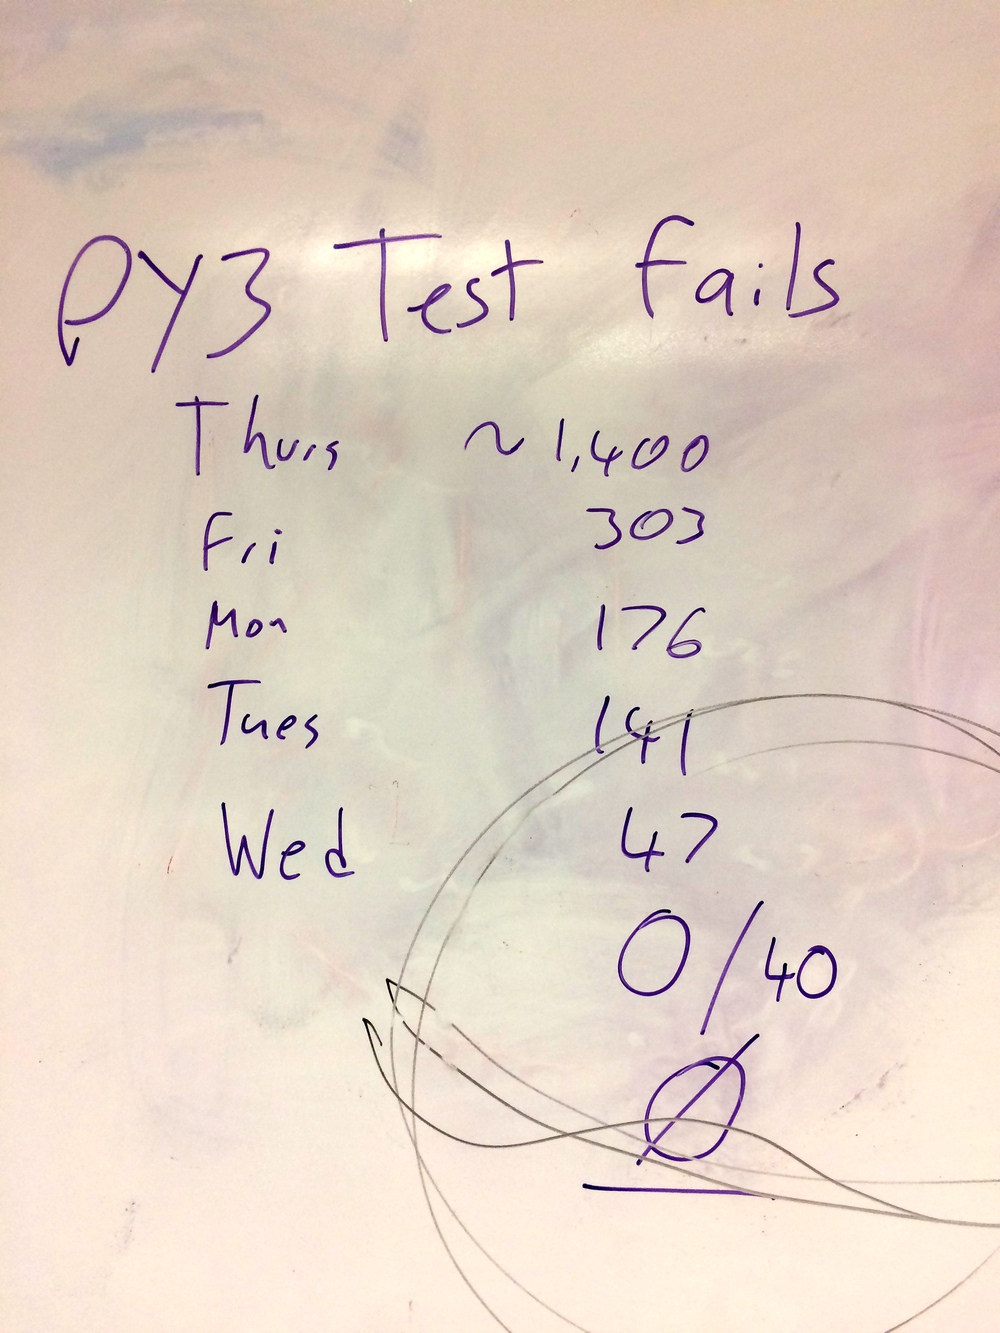 Test failures tracked on whiteboard